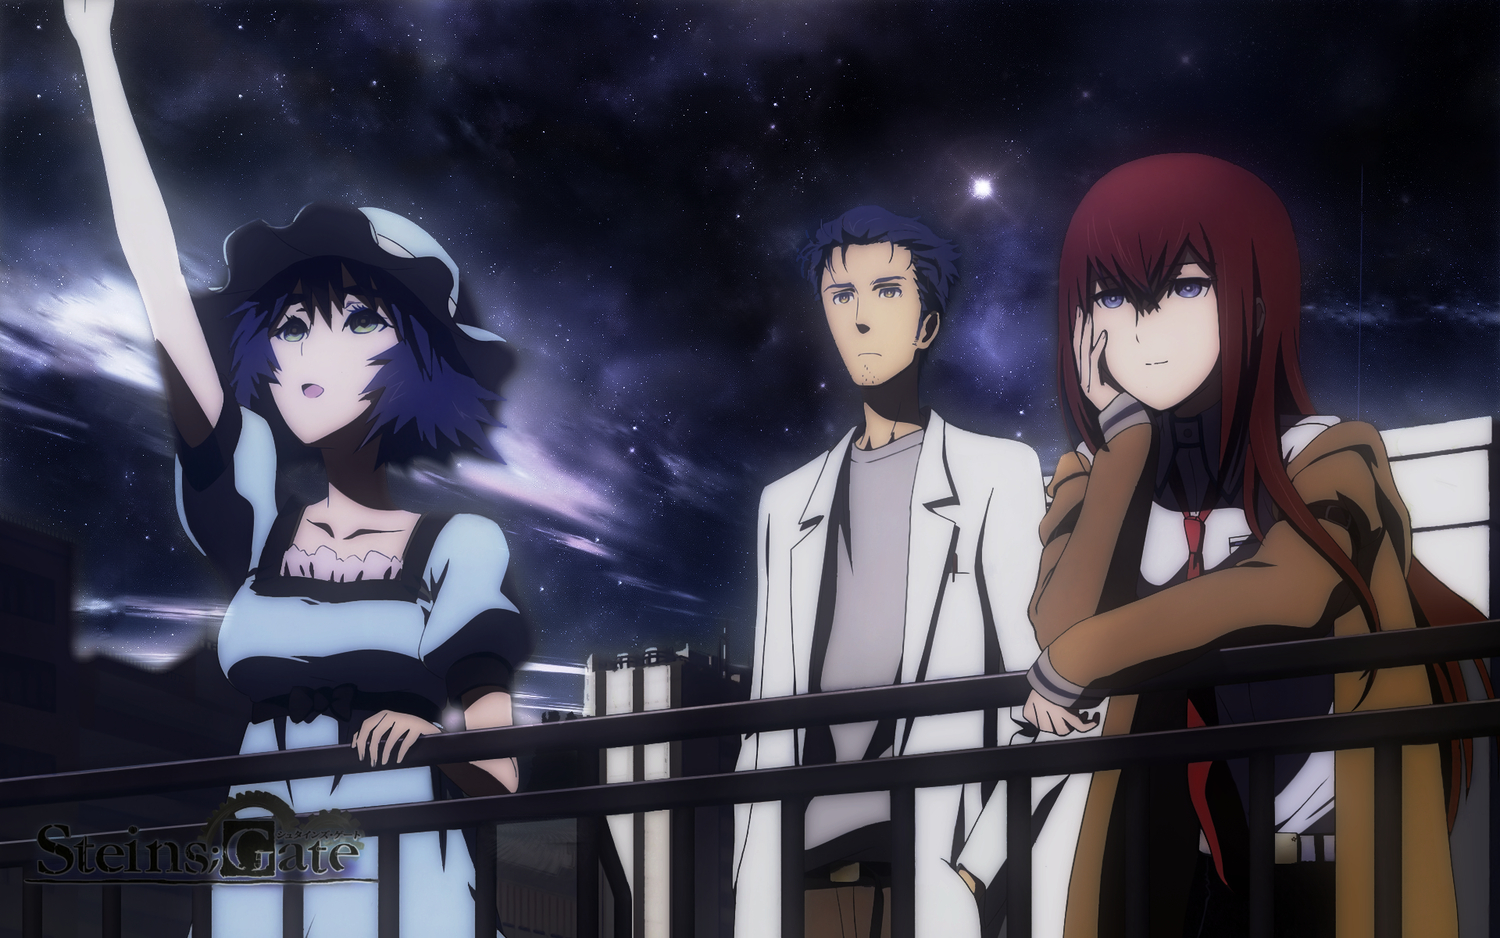 black_hair blue_eyes brown_hair long_hair makise_kurisu night okabe_rintarou photoshop shiina_mayuri short_hair sky stars steins;gate